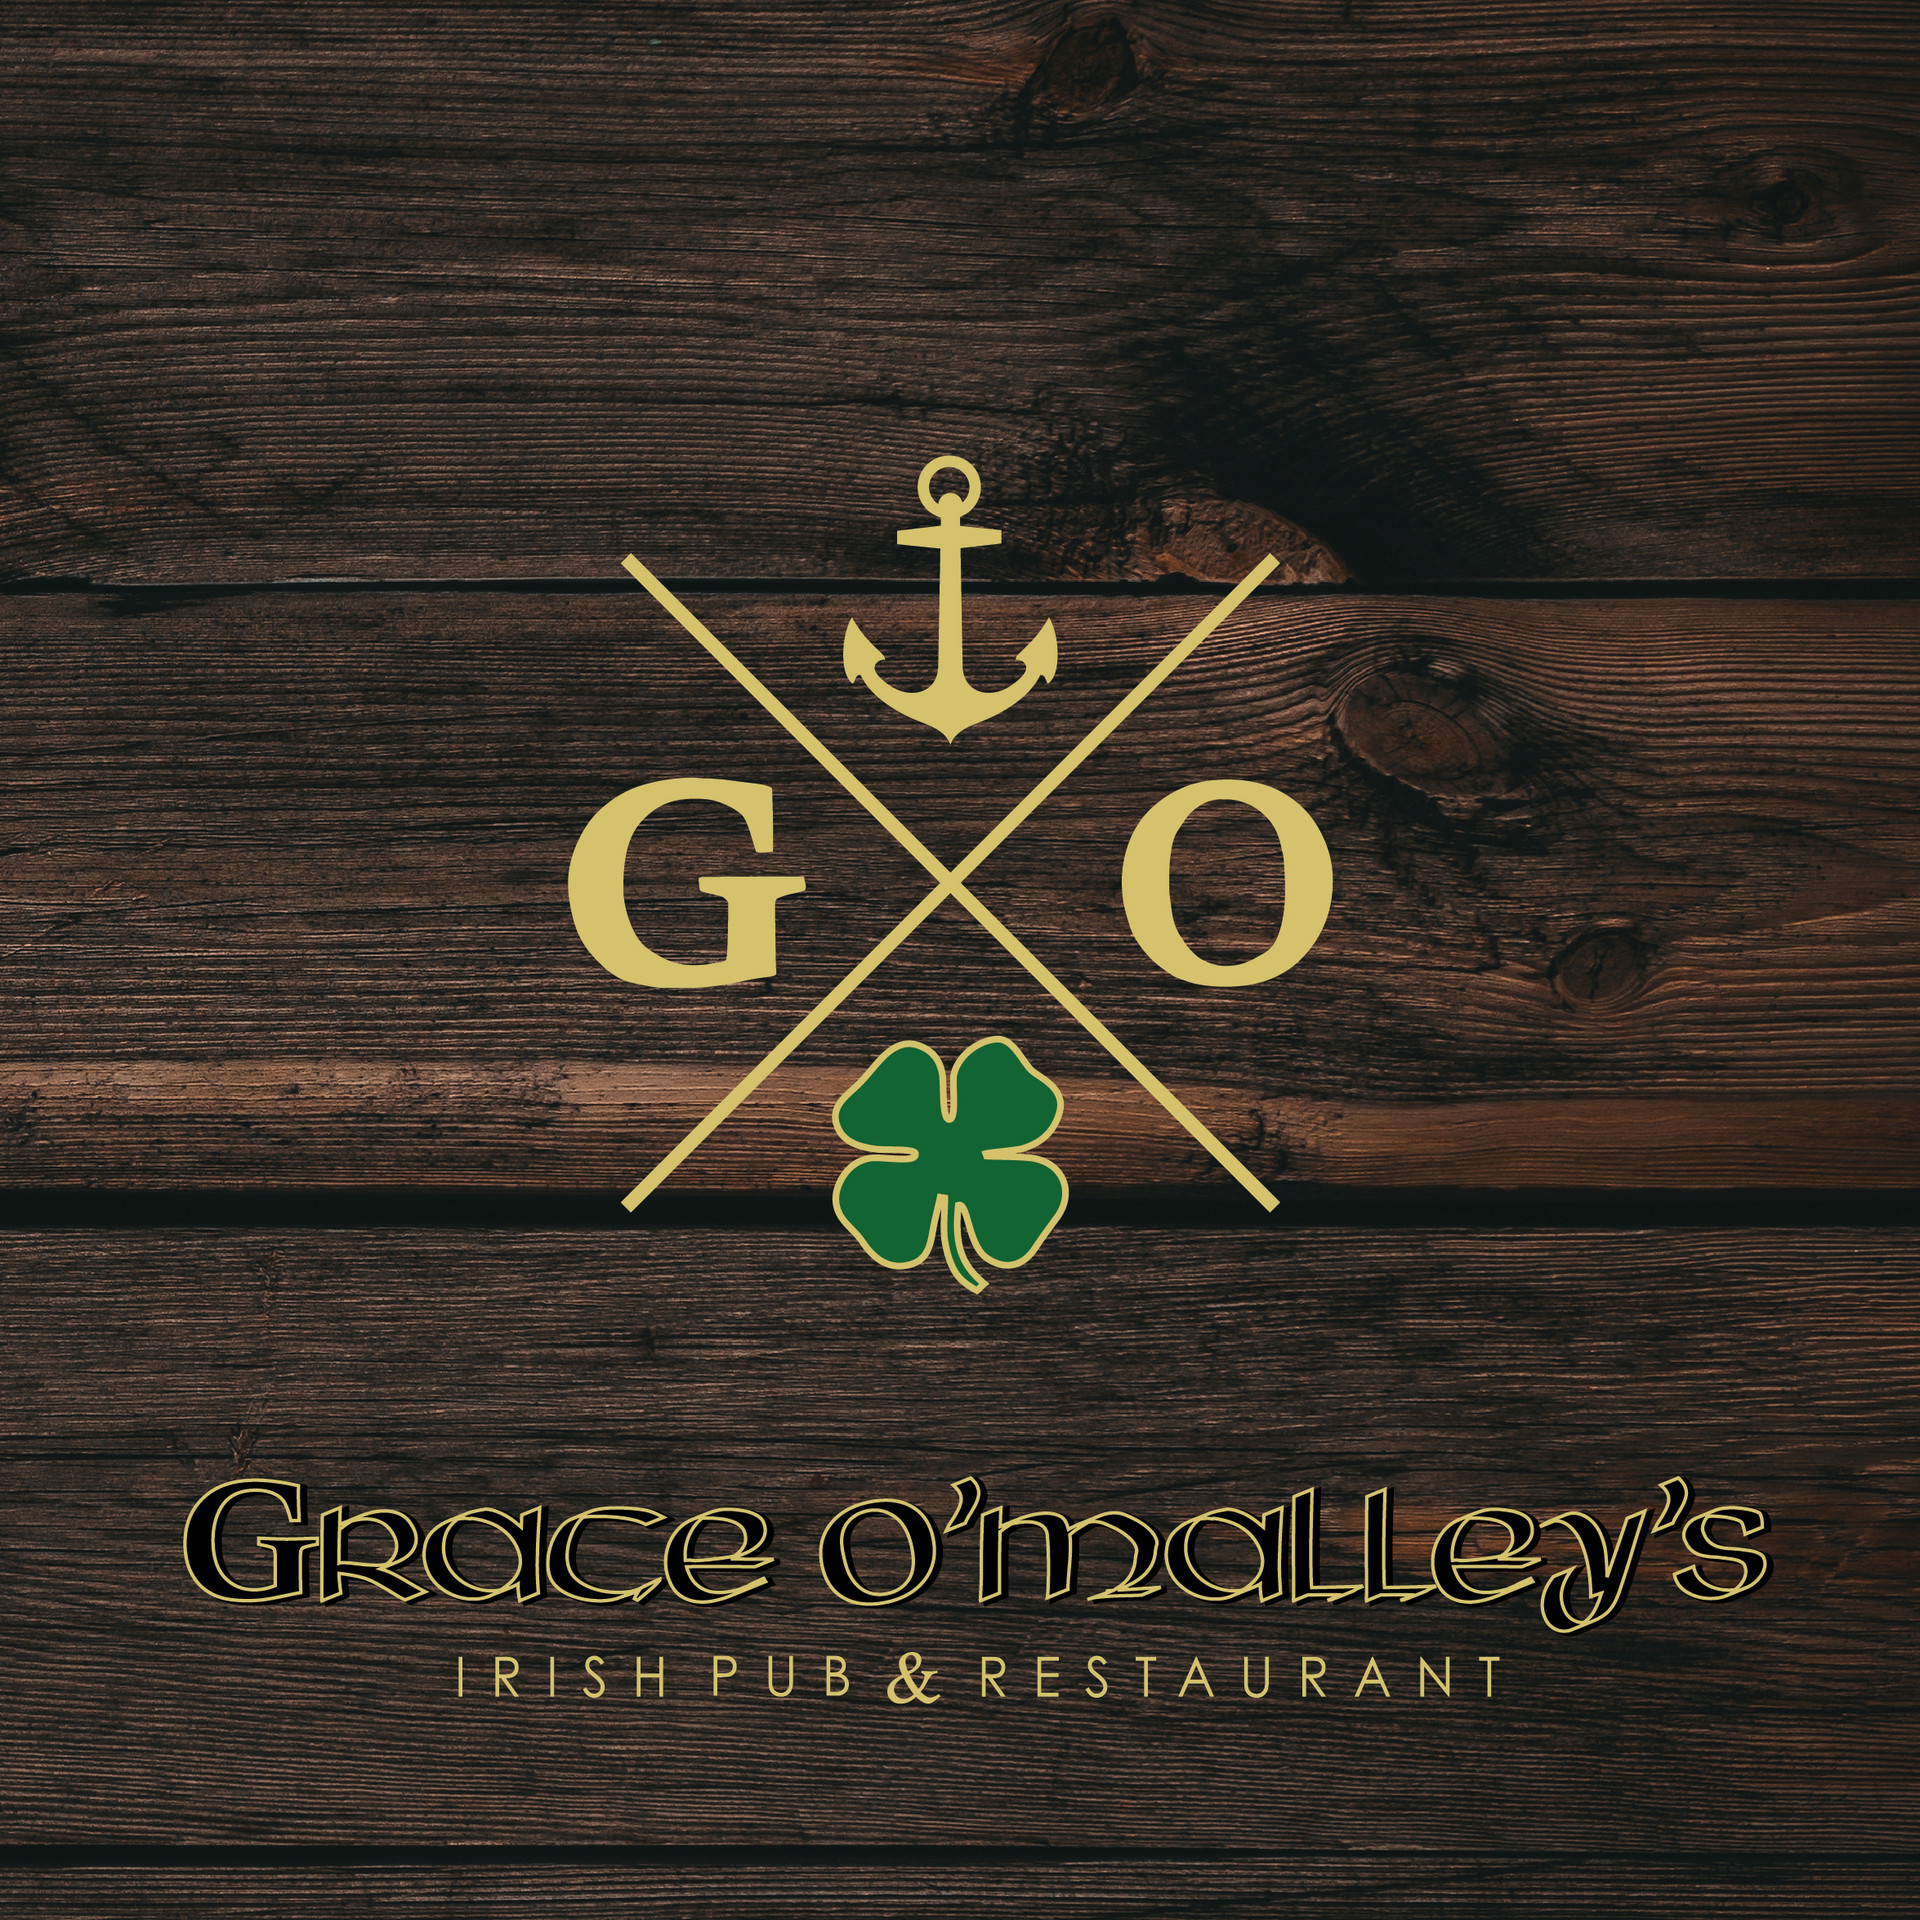 Grace O'Malley's Irish Pub and Restaurant.